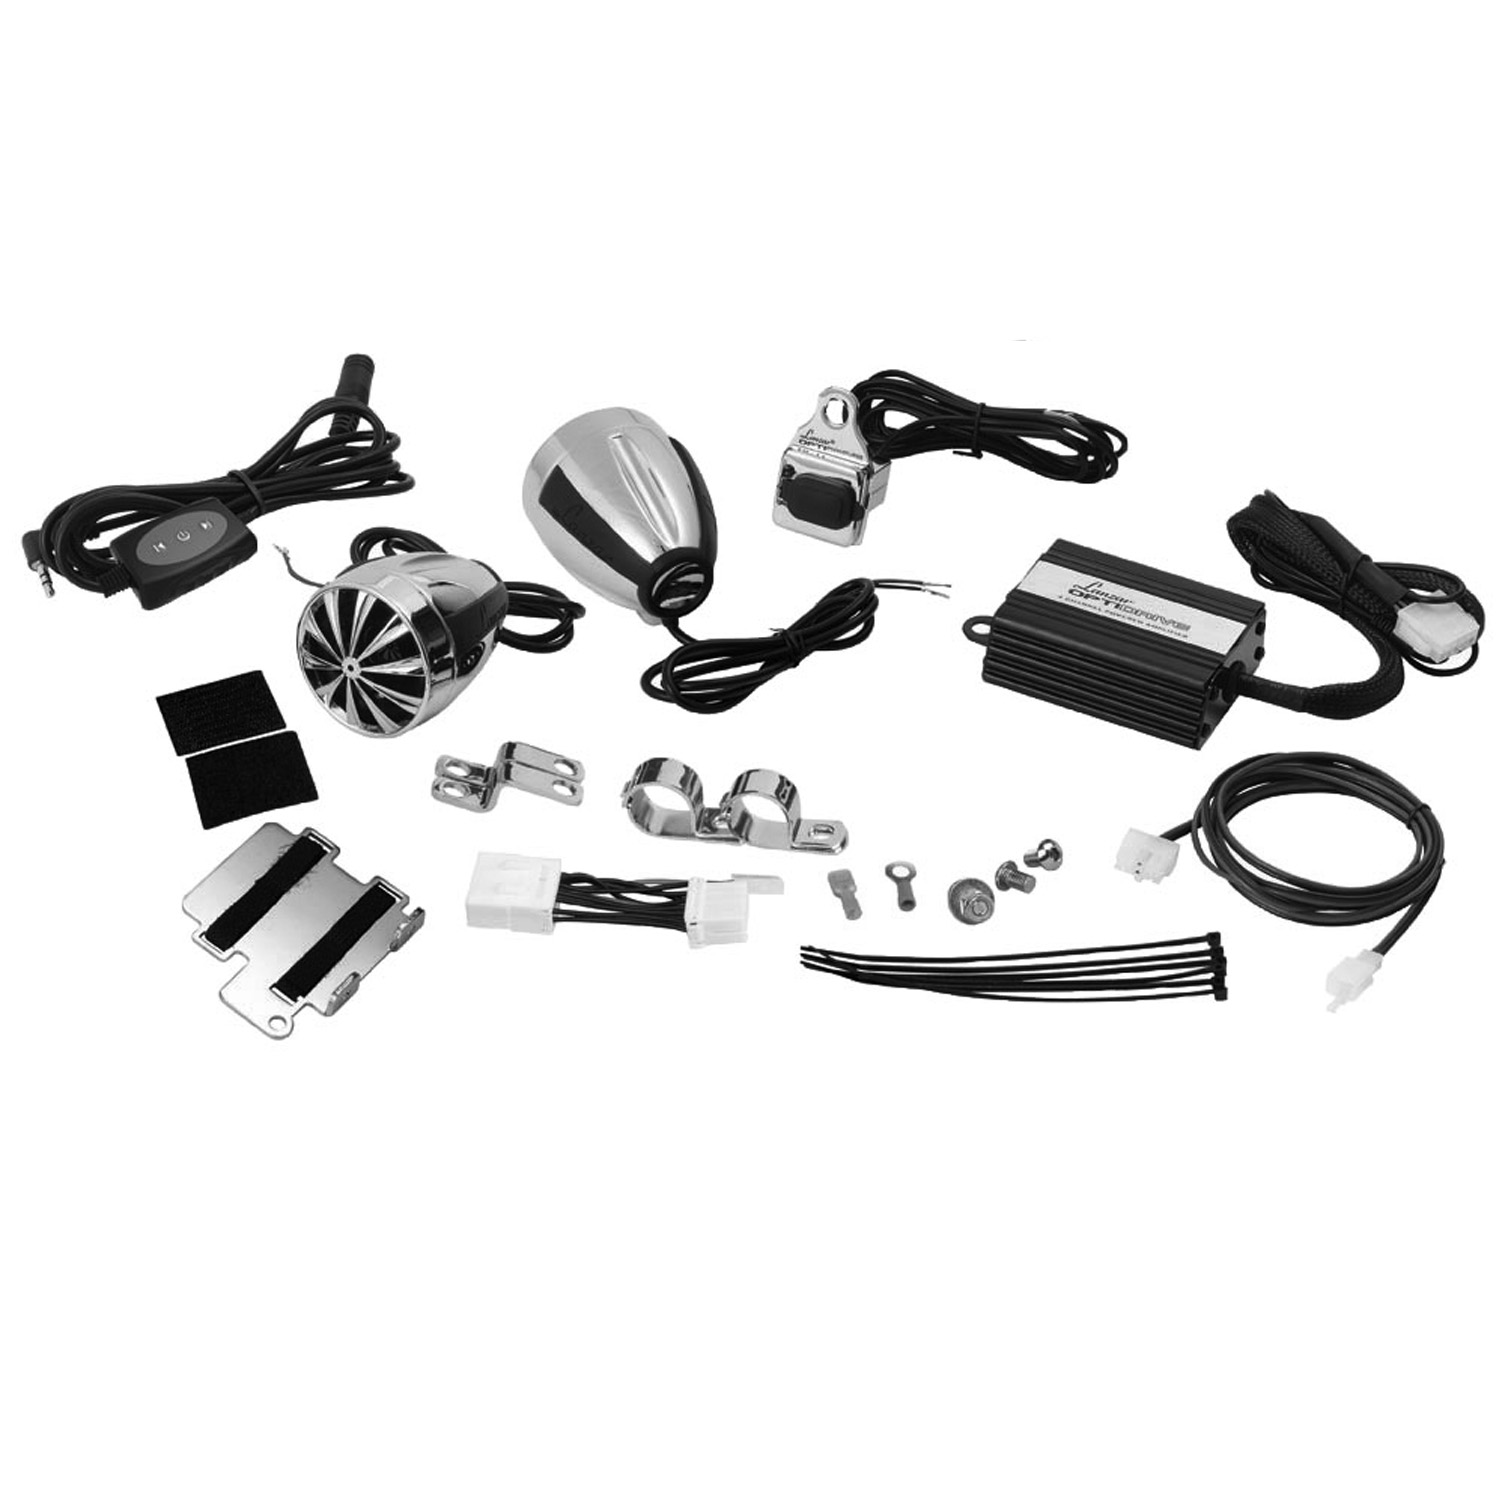 Lanzar BT Motorcycle Speaker Kit